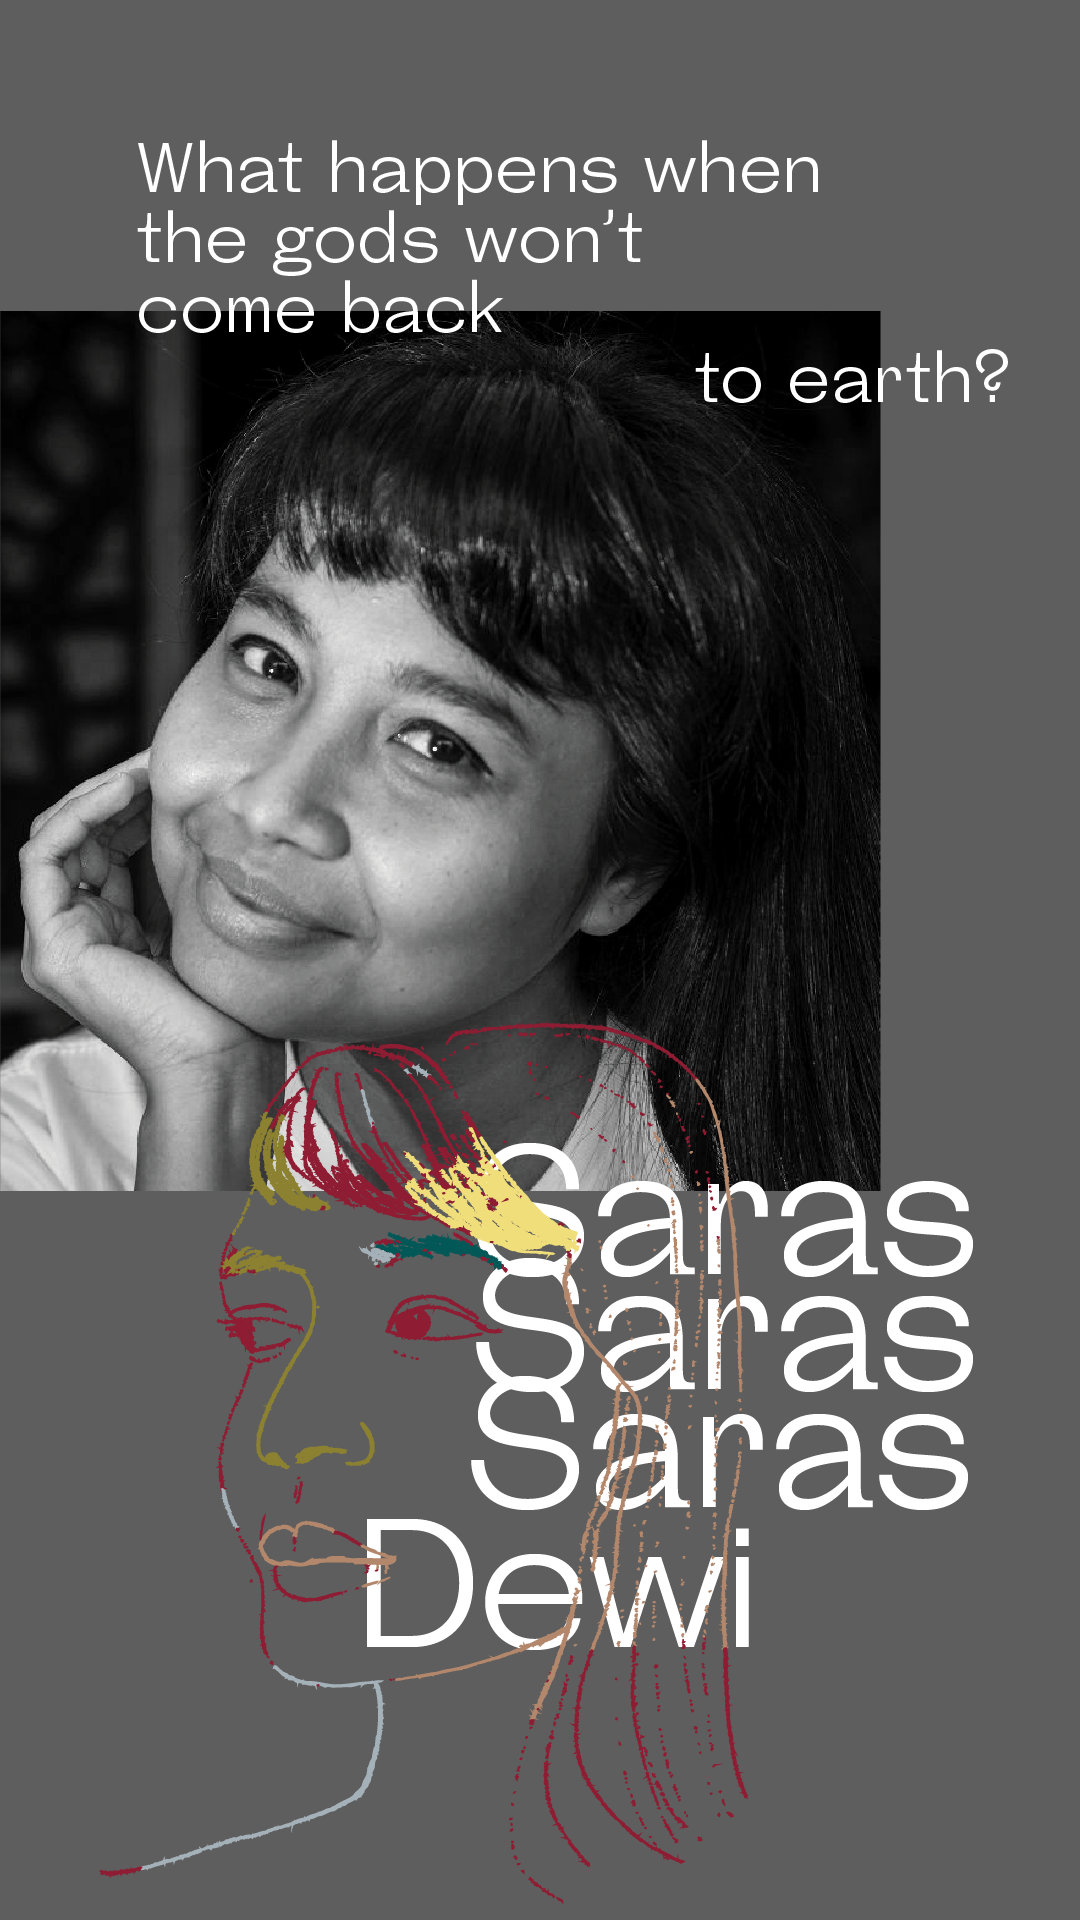 Saras Dewi - Saras Dewi will be on our stage this year! Saras Dewi is a Balinese poet, activist and academic. As a lecturer at the University of Indonesia, she teaches Ecofeminism, Ecological Philosophy, Eastern Philosophy, Philosophy of Literature and Phenomenology.Saras Dewi has written for various Indonesian and international journals on literature, feminism, human rights, eastern philosophy and environmental ethics. Her published works include Jiwa Putih (White Soul), Hak Azasi Manusia (Human Rights), Cinta Bukan Cokelat (Love is Not Chocolate), Ekofenomenologi (Ecophenomenology) and Kekasih Teluk (Bay Lover's). She has judged literary awards, and is on the steering committee for the Asean Literary Festival.An environmental and women's activist, Saras Dewi is involved in advocacy for Benoa Bay's conservation in Bali, and is working alongside the women farmers of Kendeng Mountain (Central Java) to preserve their wilderness. She campaigns against sexual violence and is an active counsellor for sexual abuse survivors. Currently, she is working to raise awareness regarding gender justice within the academic community.